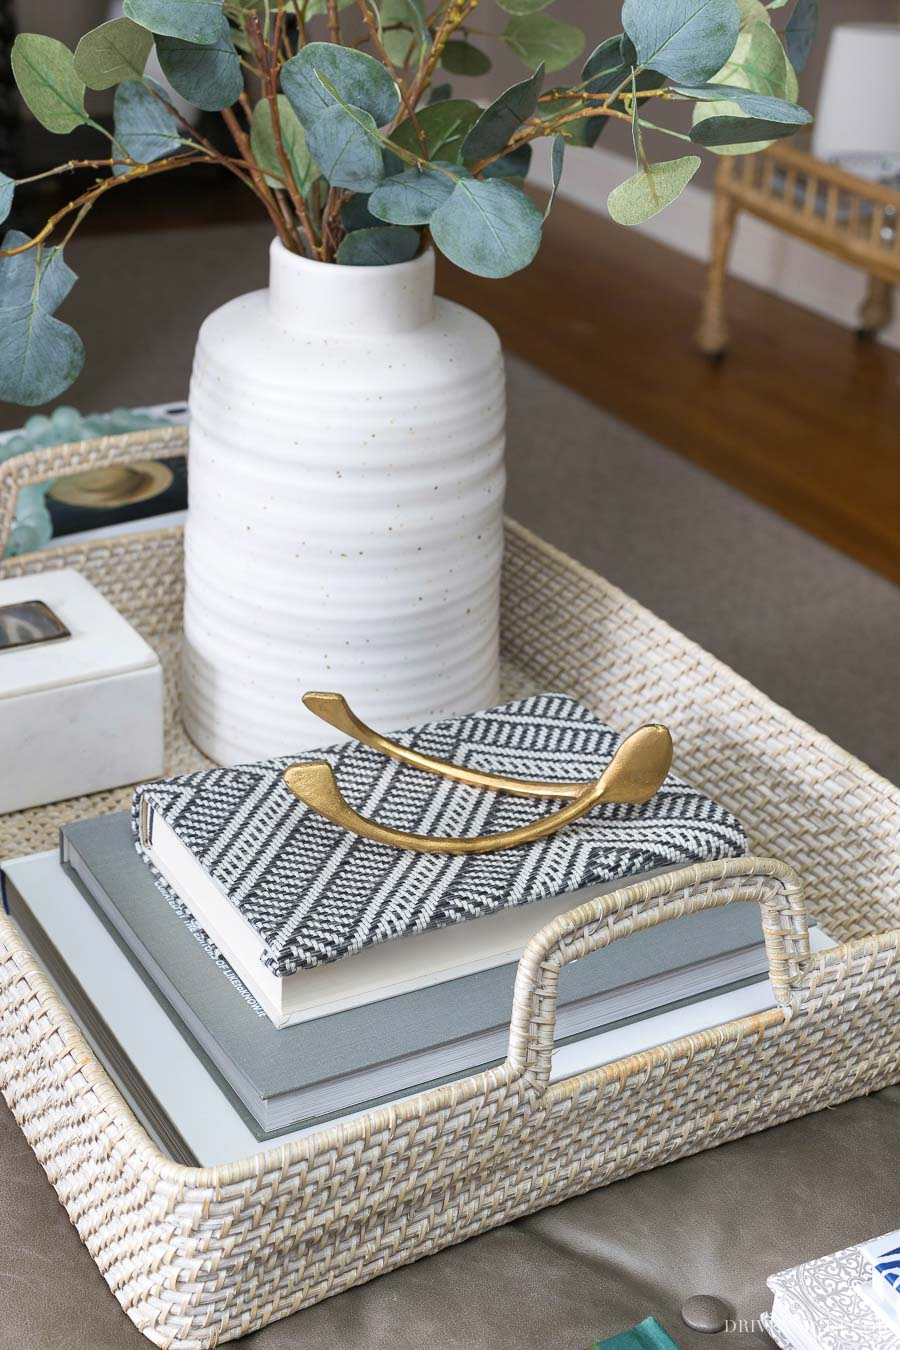 The perfect coffee table tray! Love this large whitewash rattan serving tray!